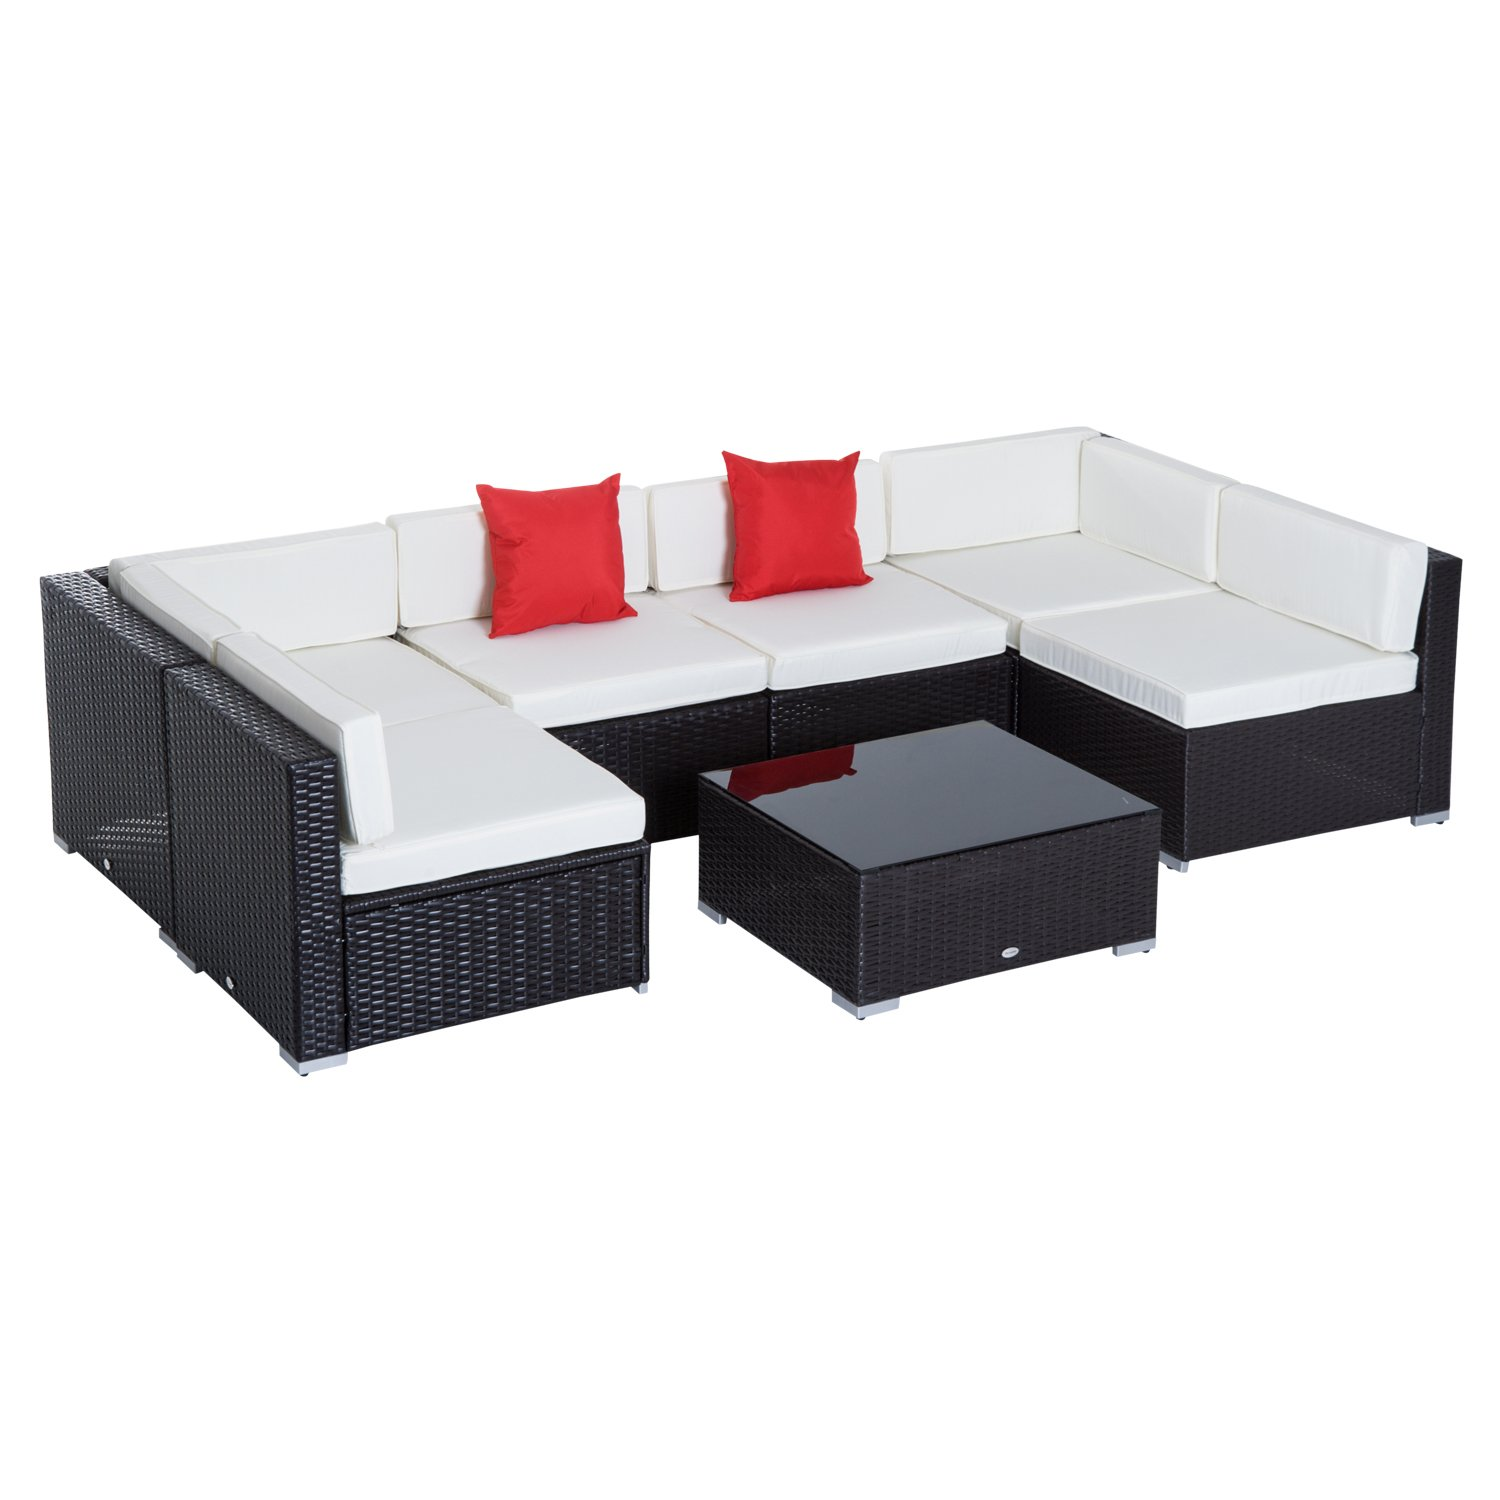 Outsunny 7 Piece Outdoor Patio Rattan Wicker Sofa Sectional Conversation Furniture Set by Outsunny